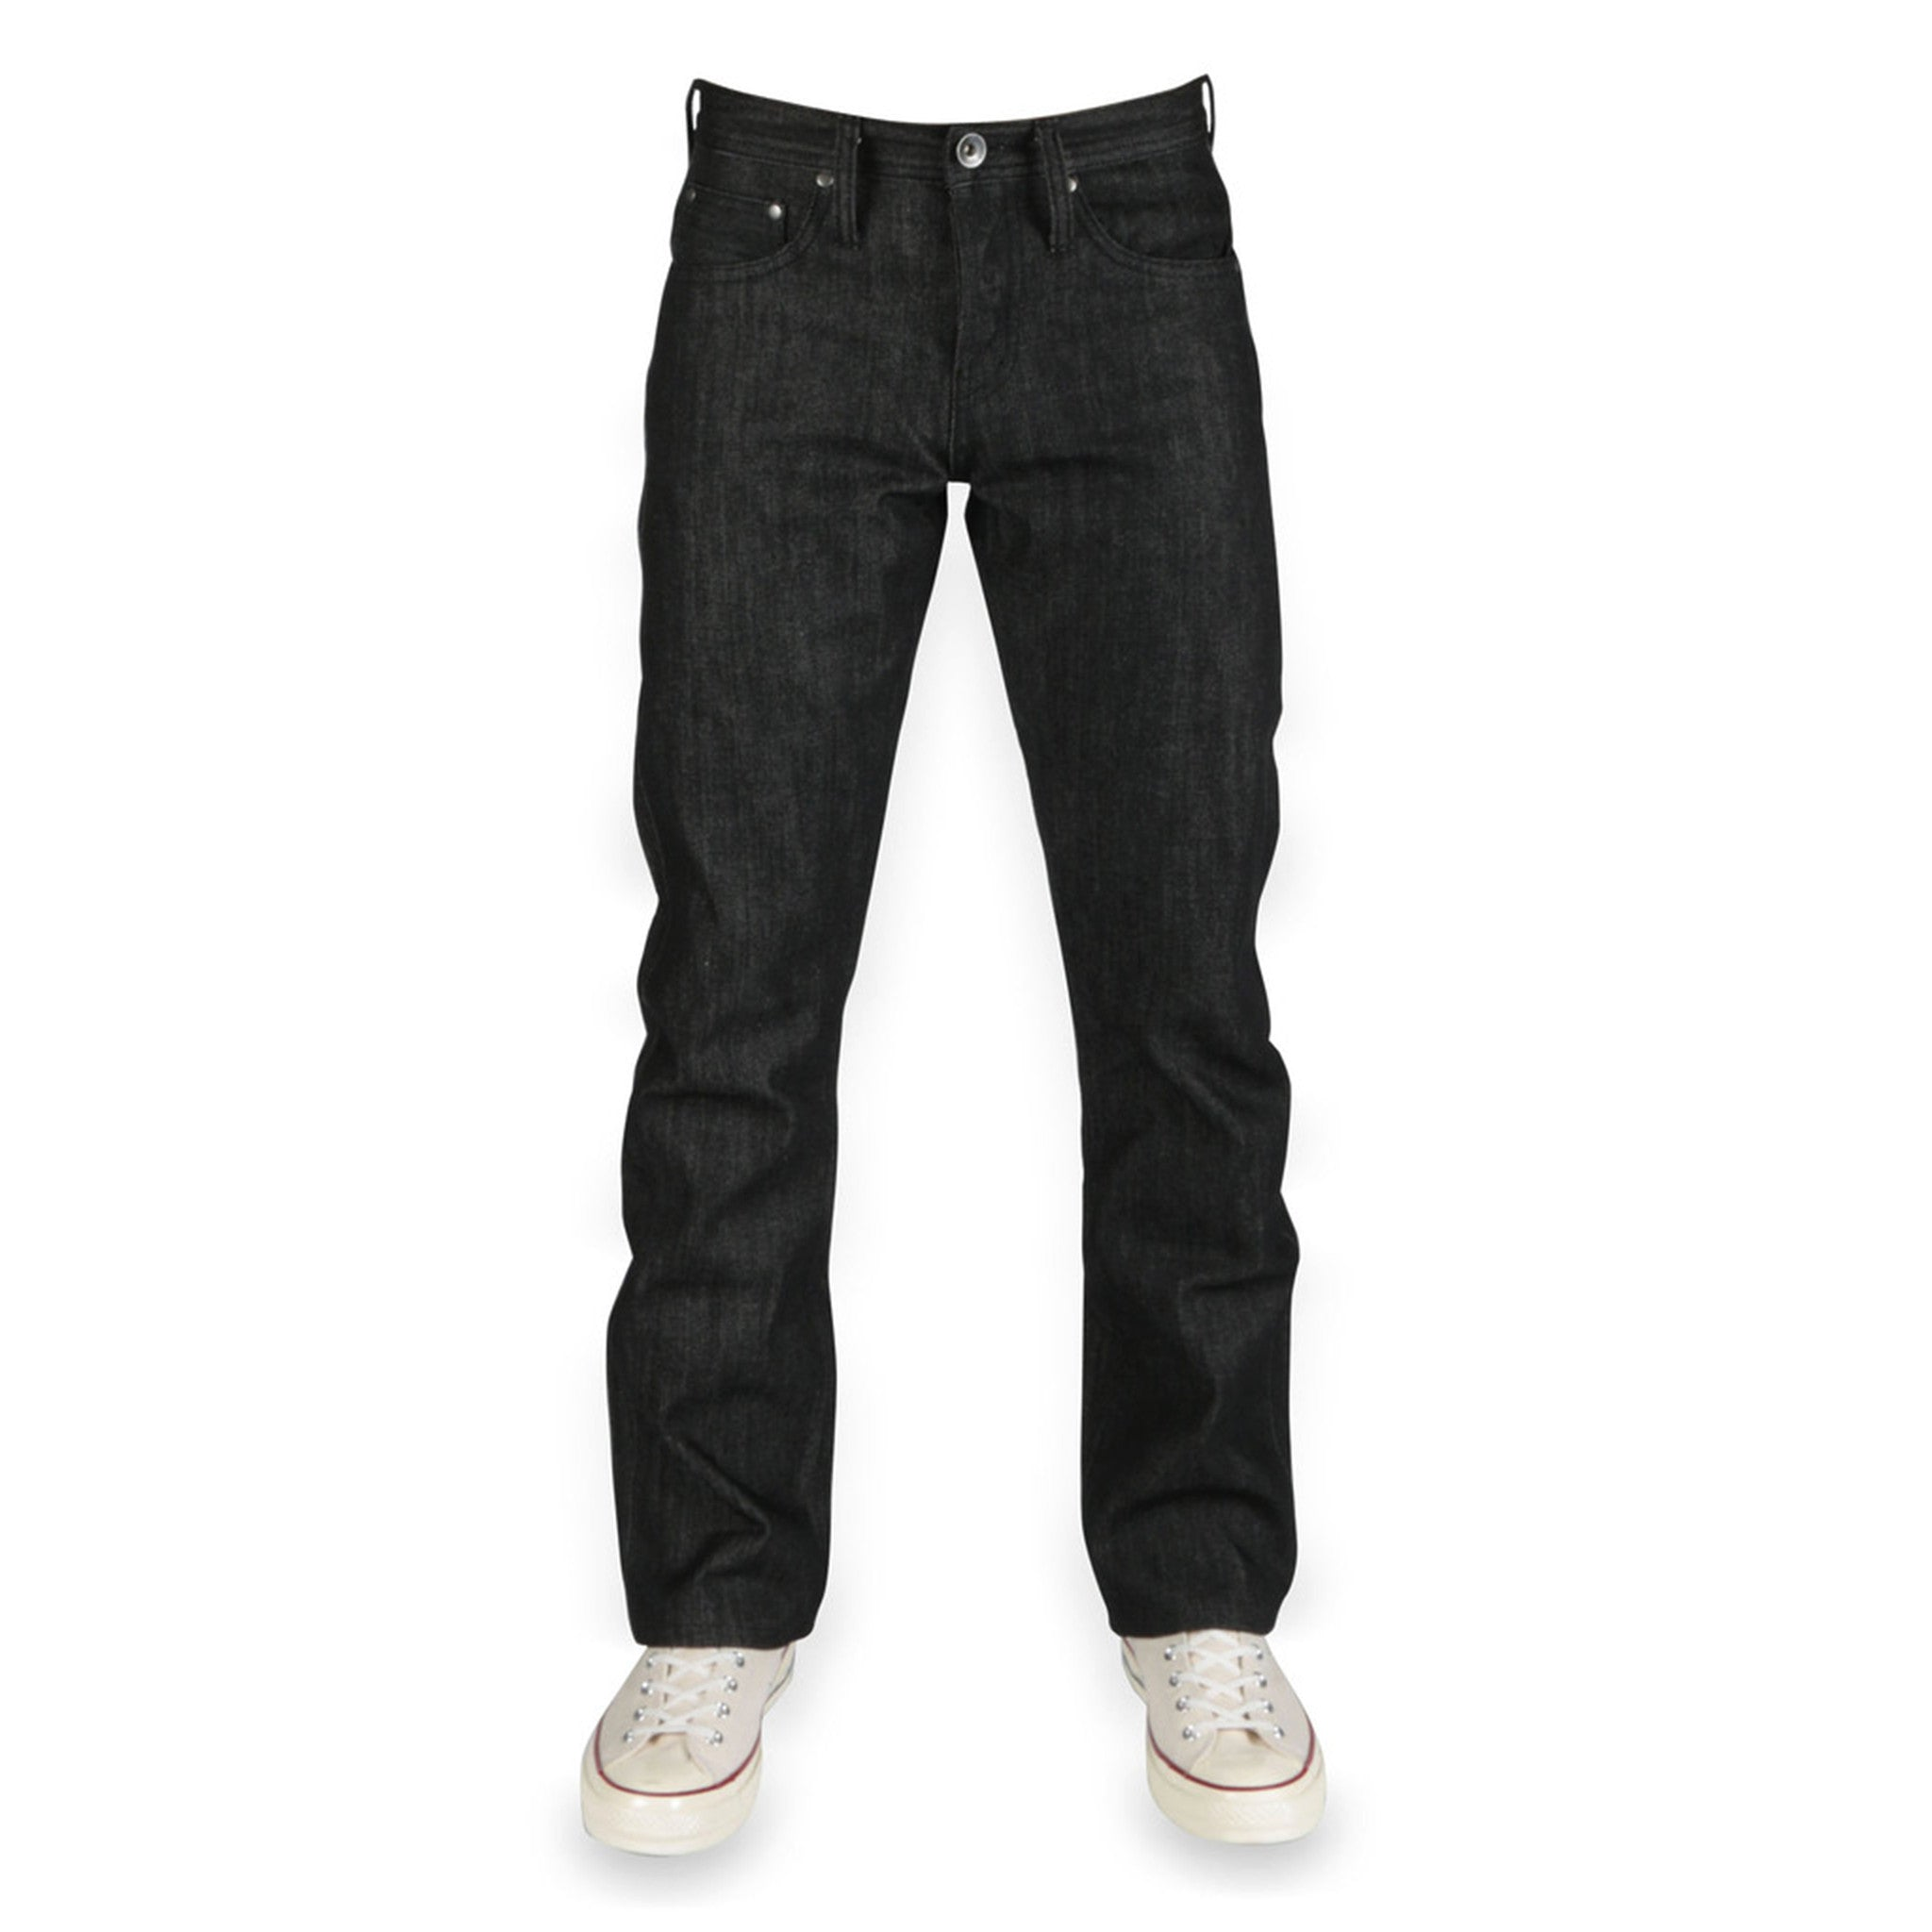 UB304 Straight Fit 14.5oz Black Selvedge Denim